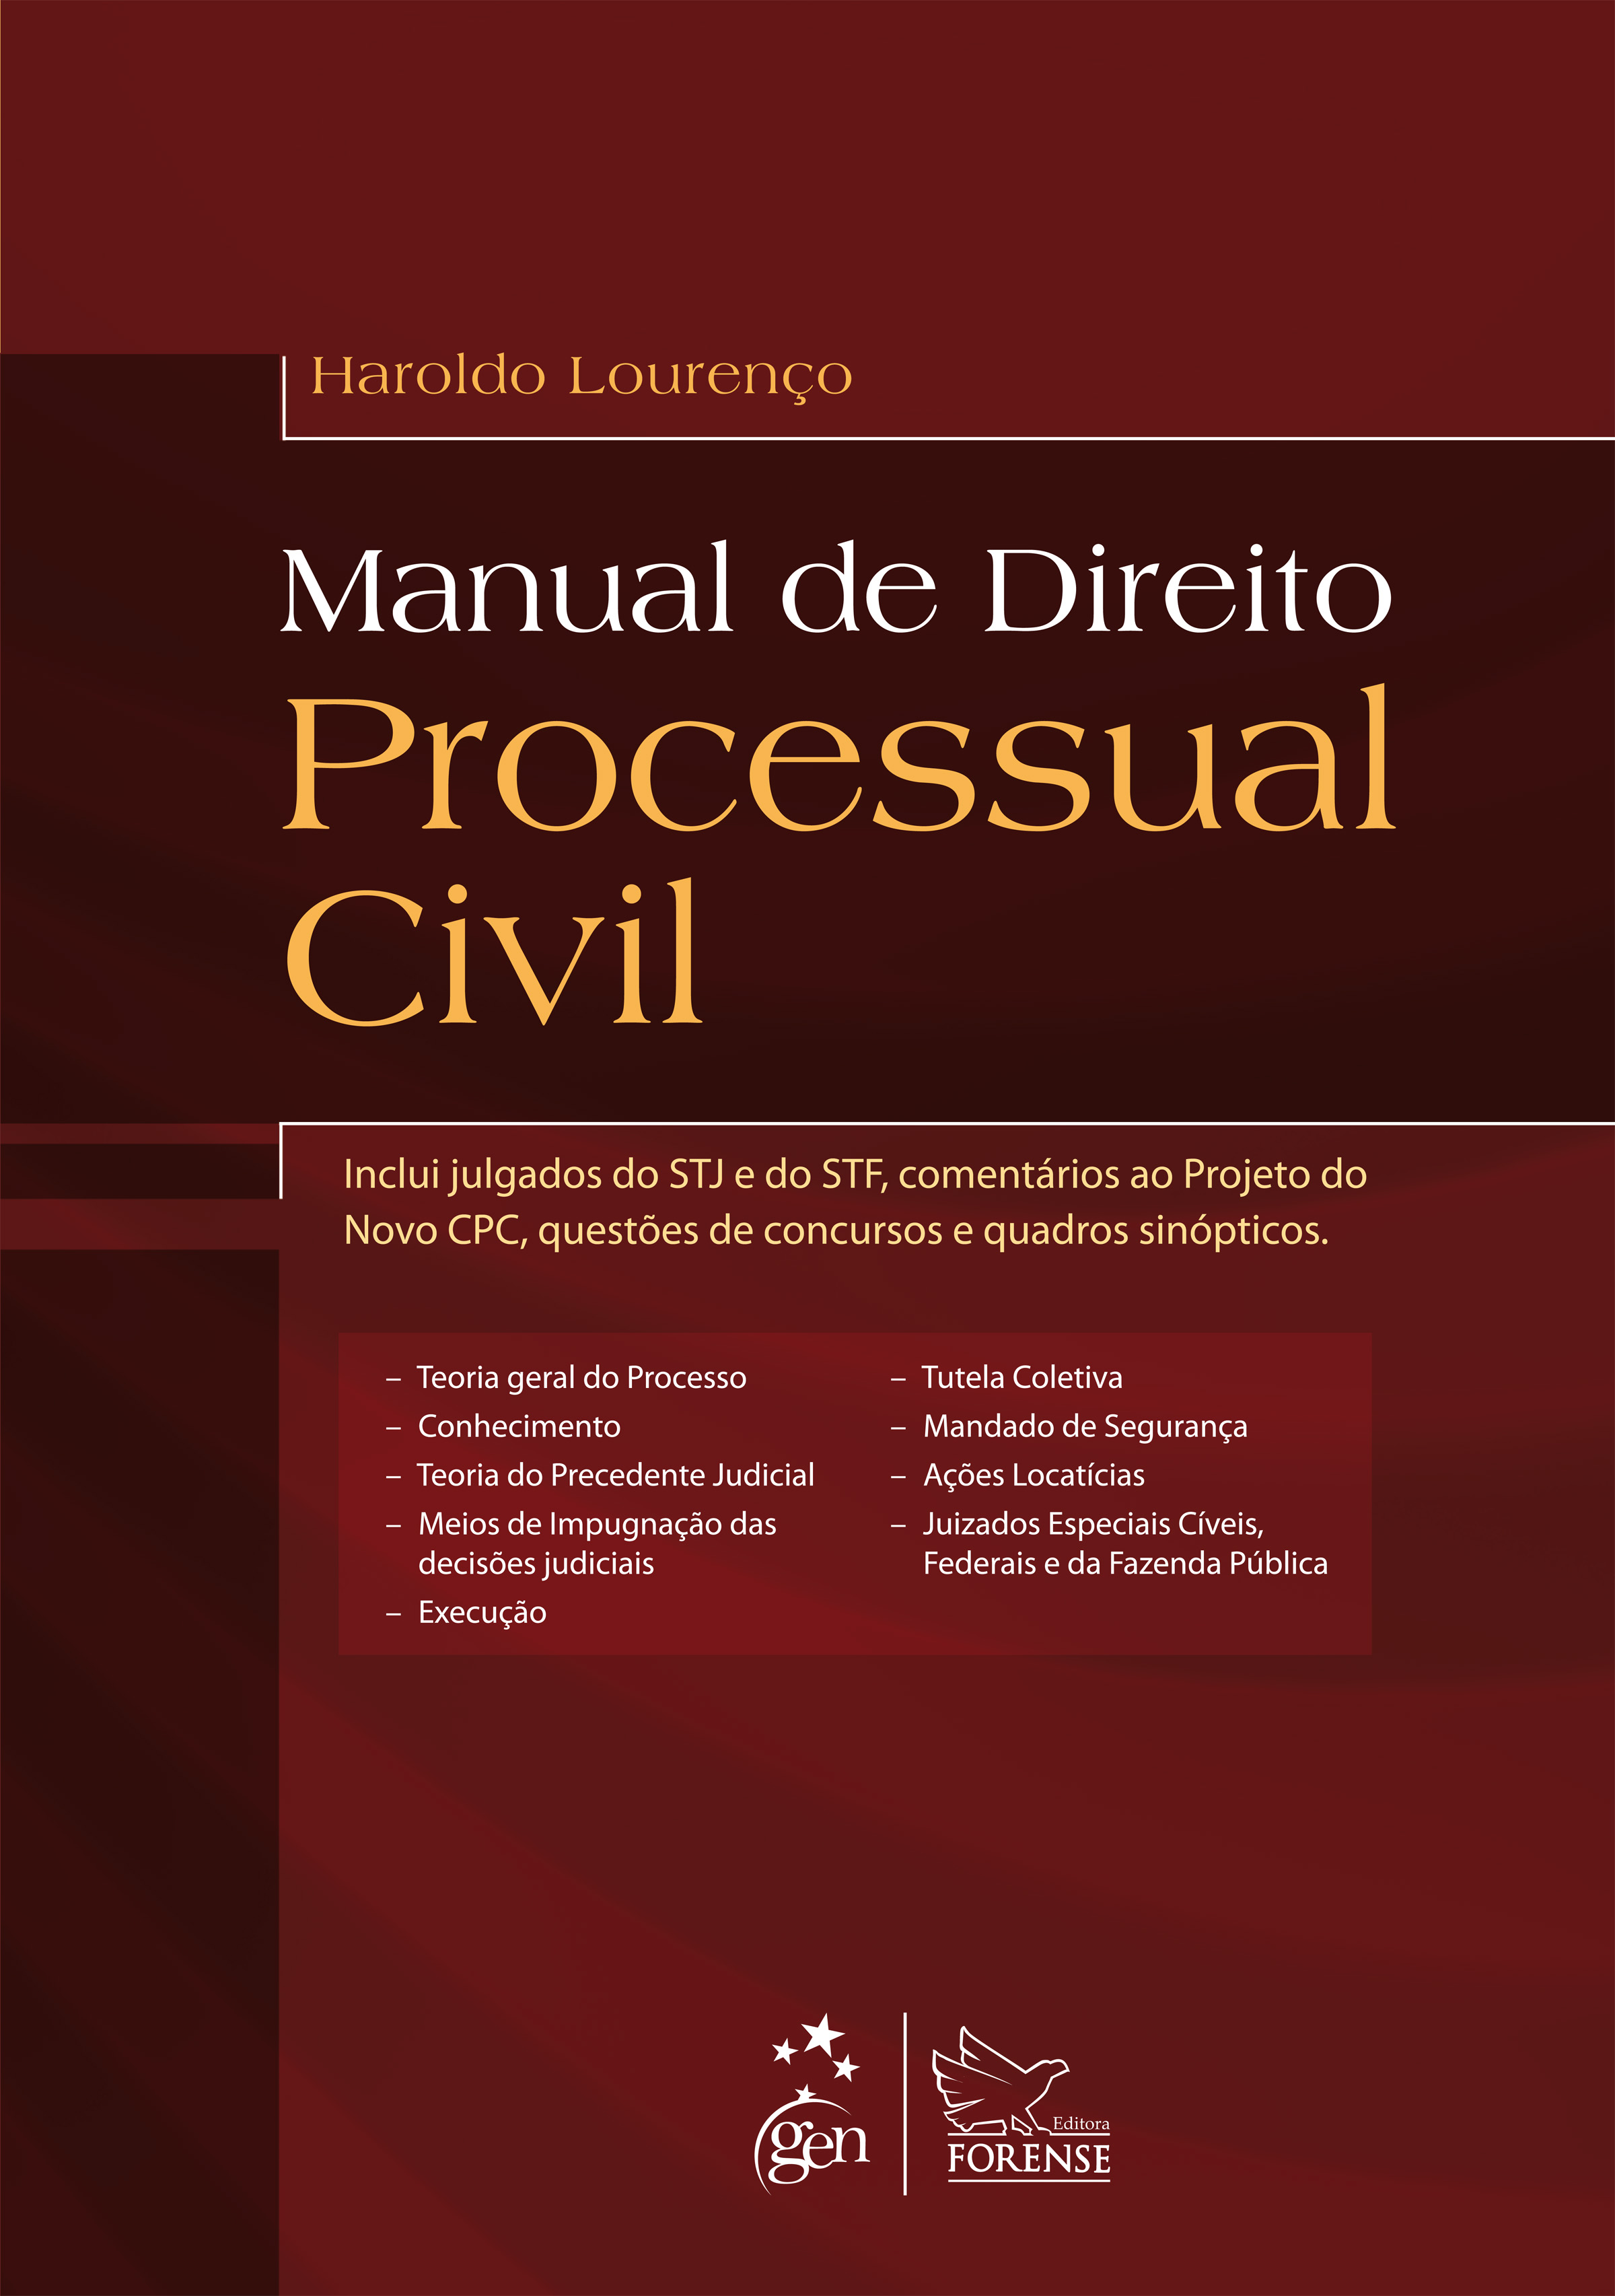 ManualdeDireitoProcessualCivil